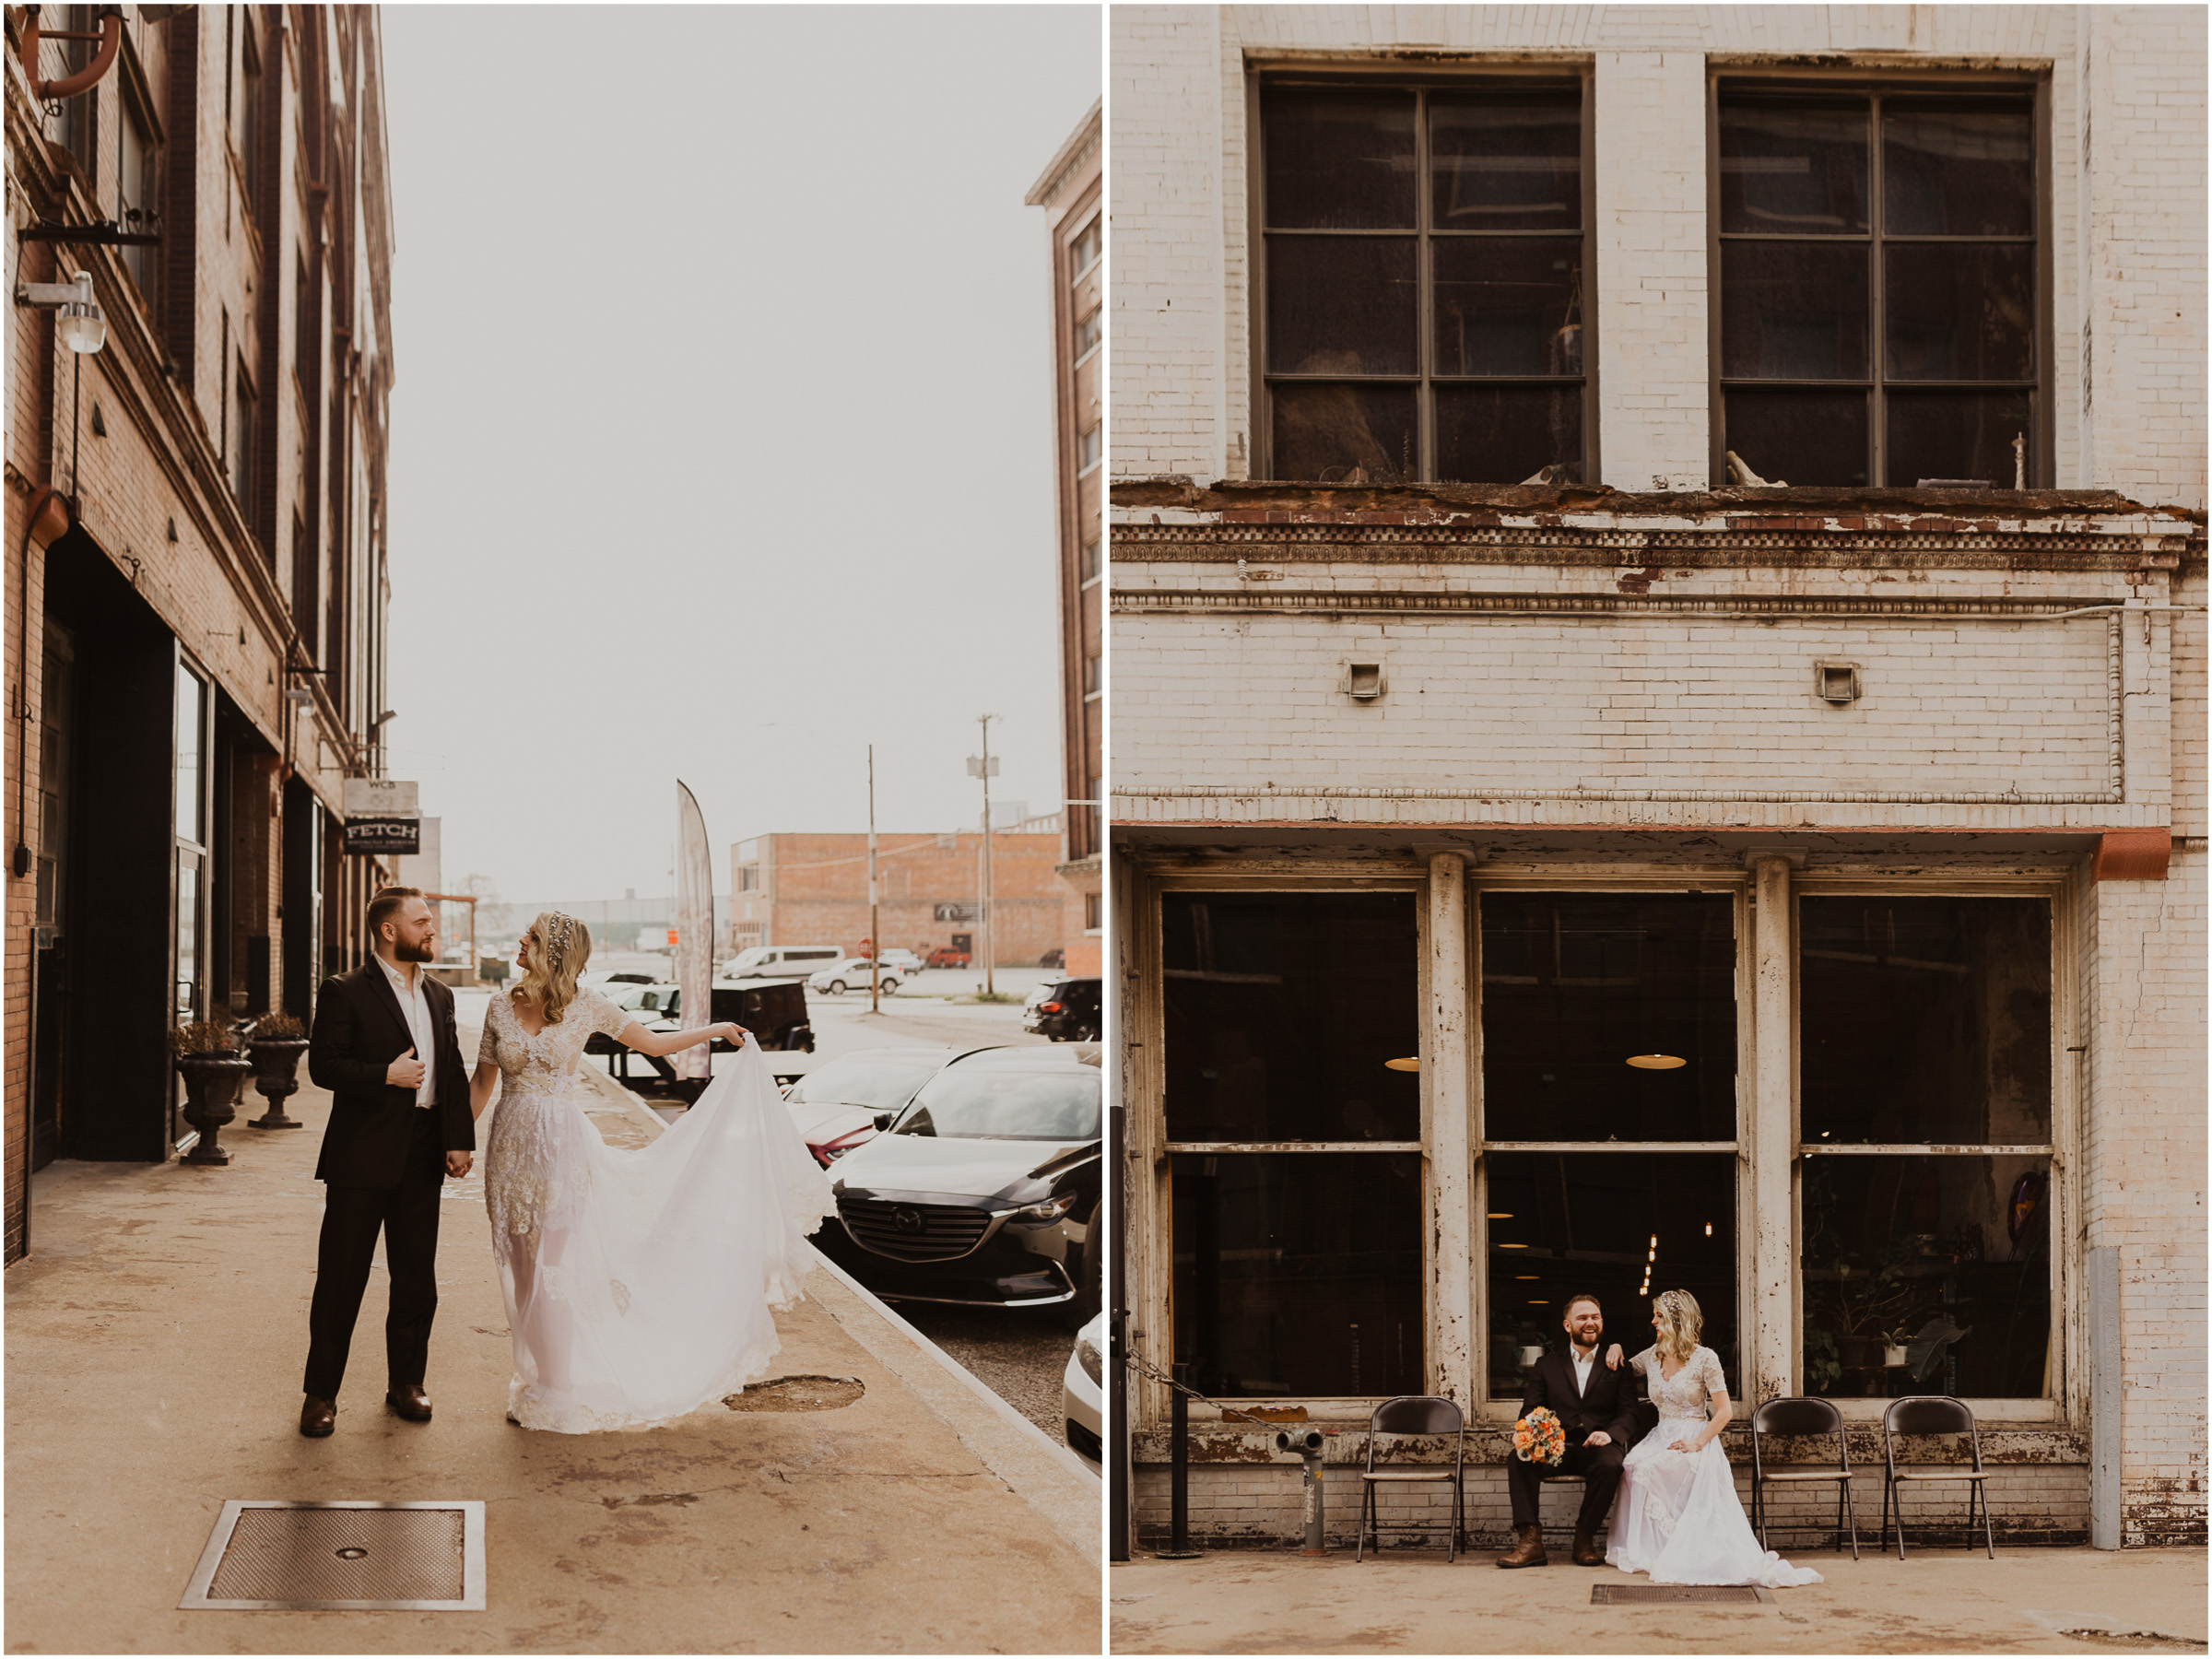 alyssa barletter photography styled shoot wedding inspiration kansas city west bottoms photographer motorcycle edgy intimate-27.jpg